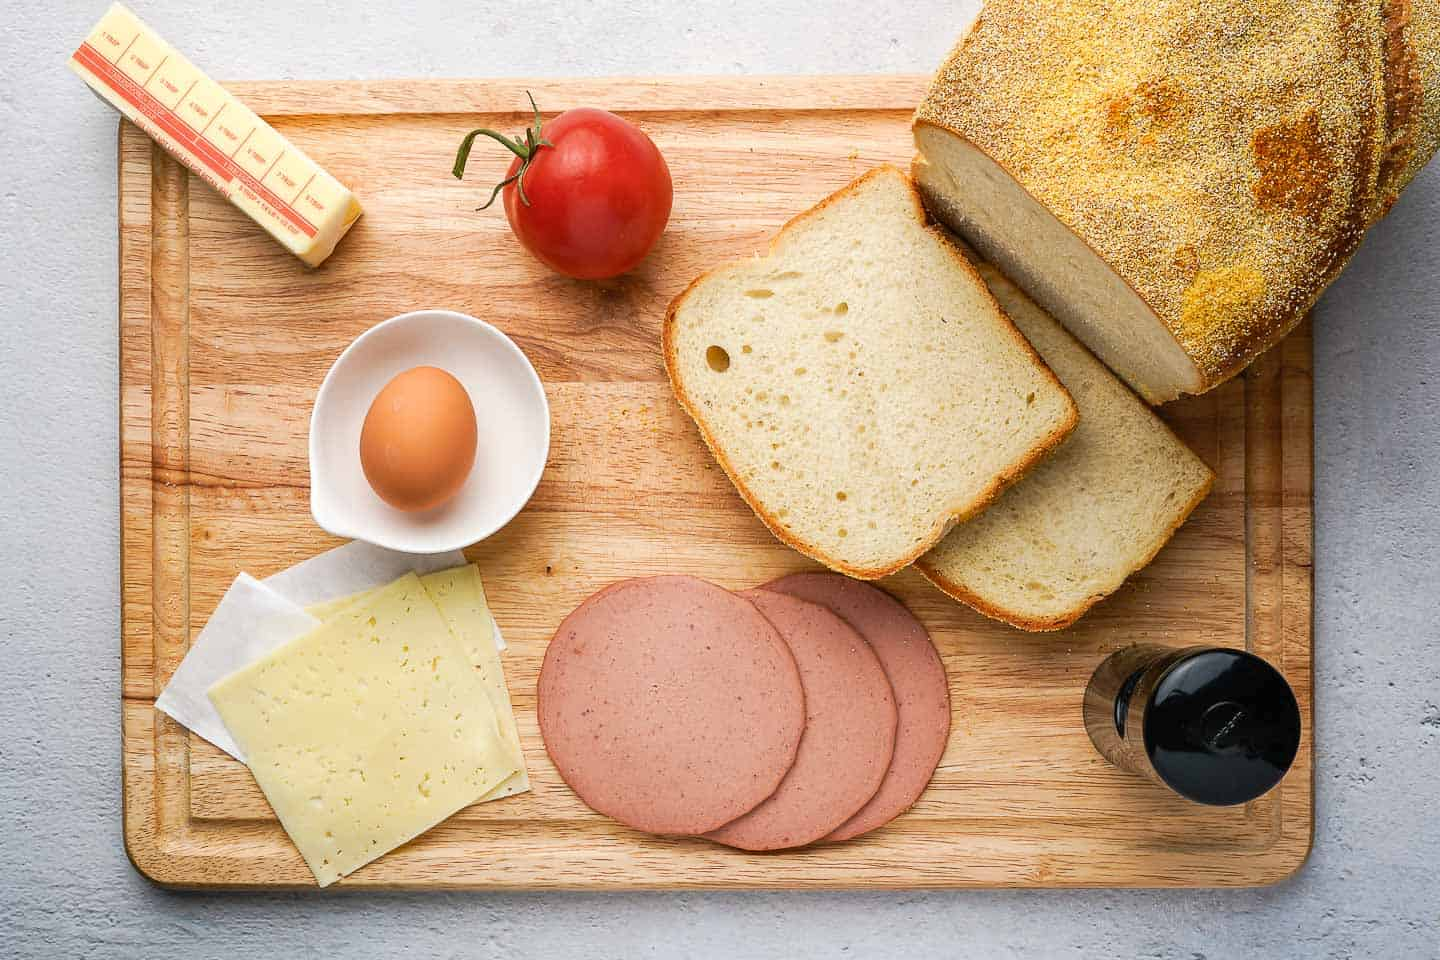 Fried Bologna and Egg Sandwich Ingredients on a Cutting Board